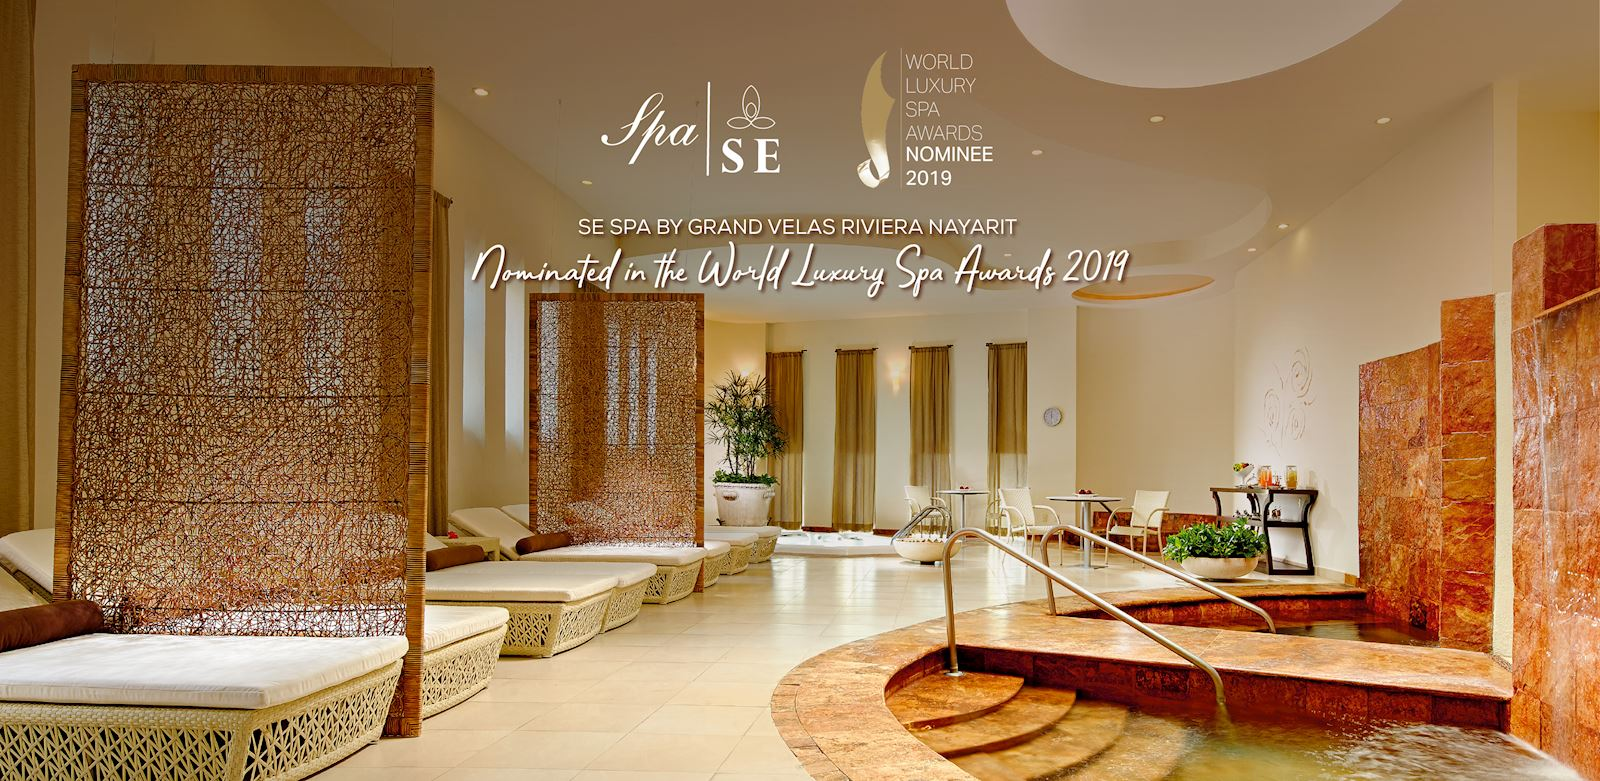 se spa - Grand Velas Riviera Nayarit